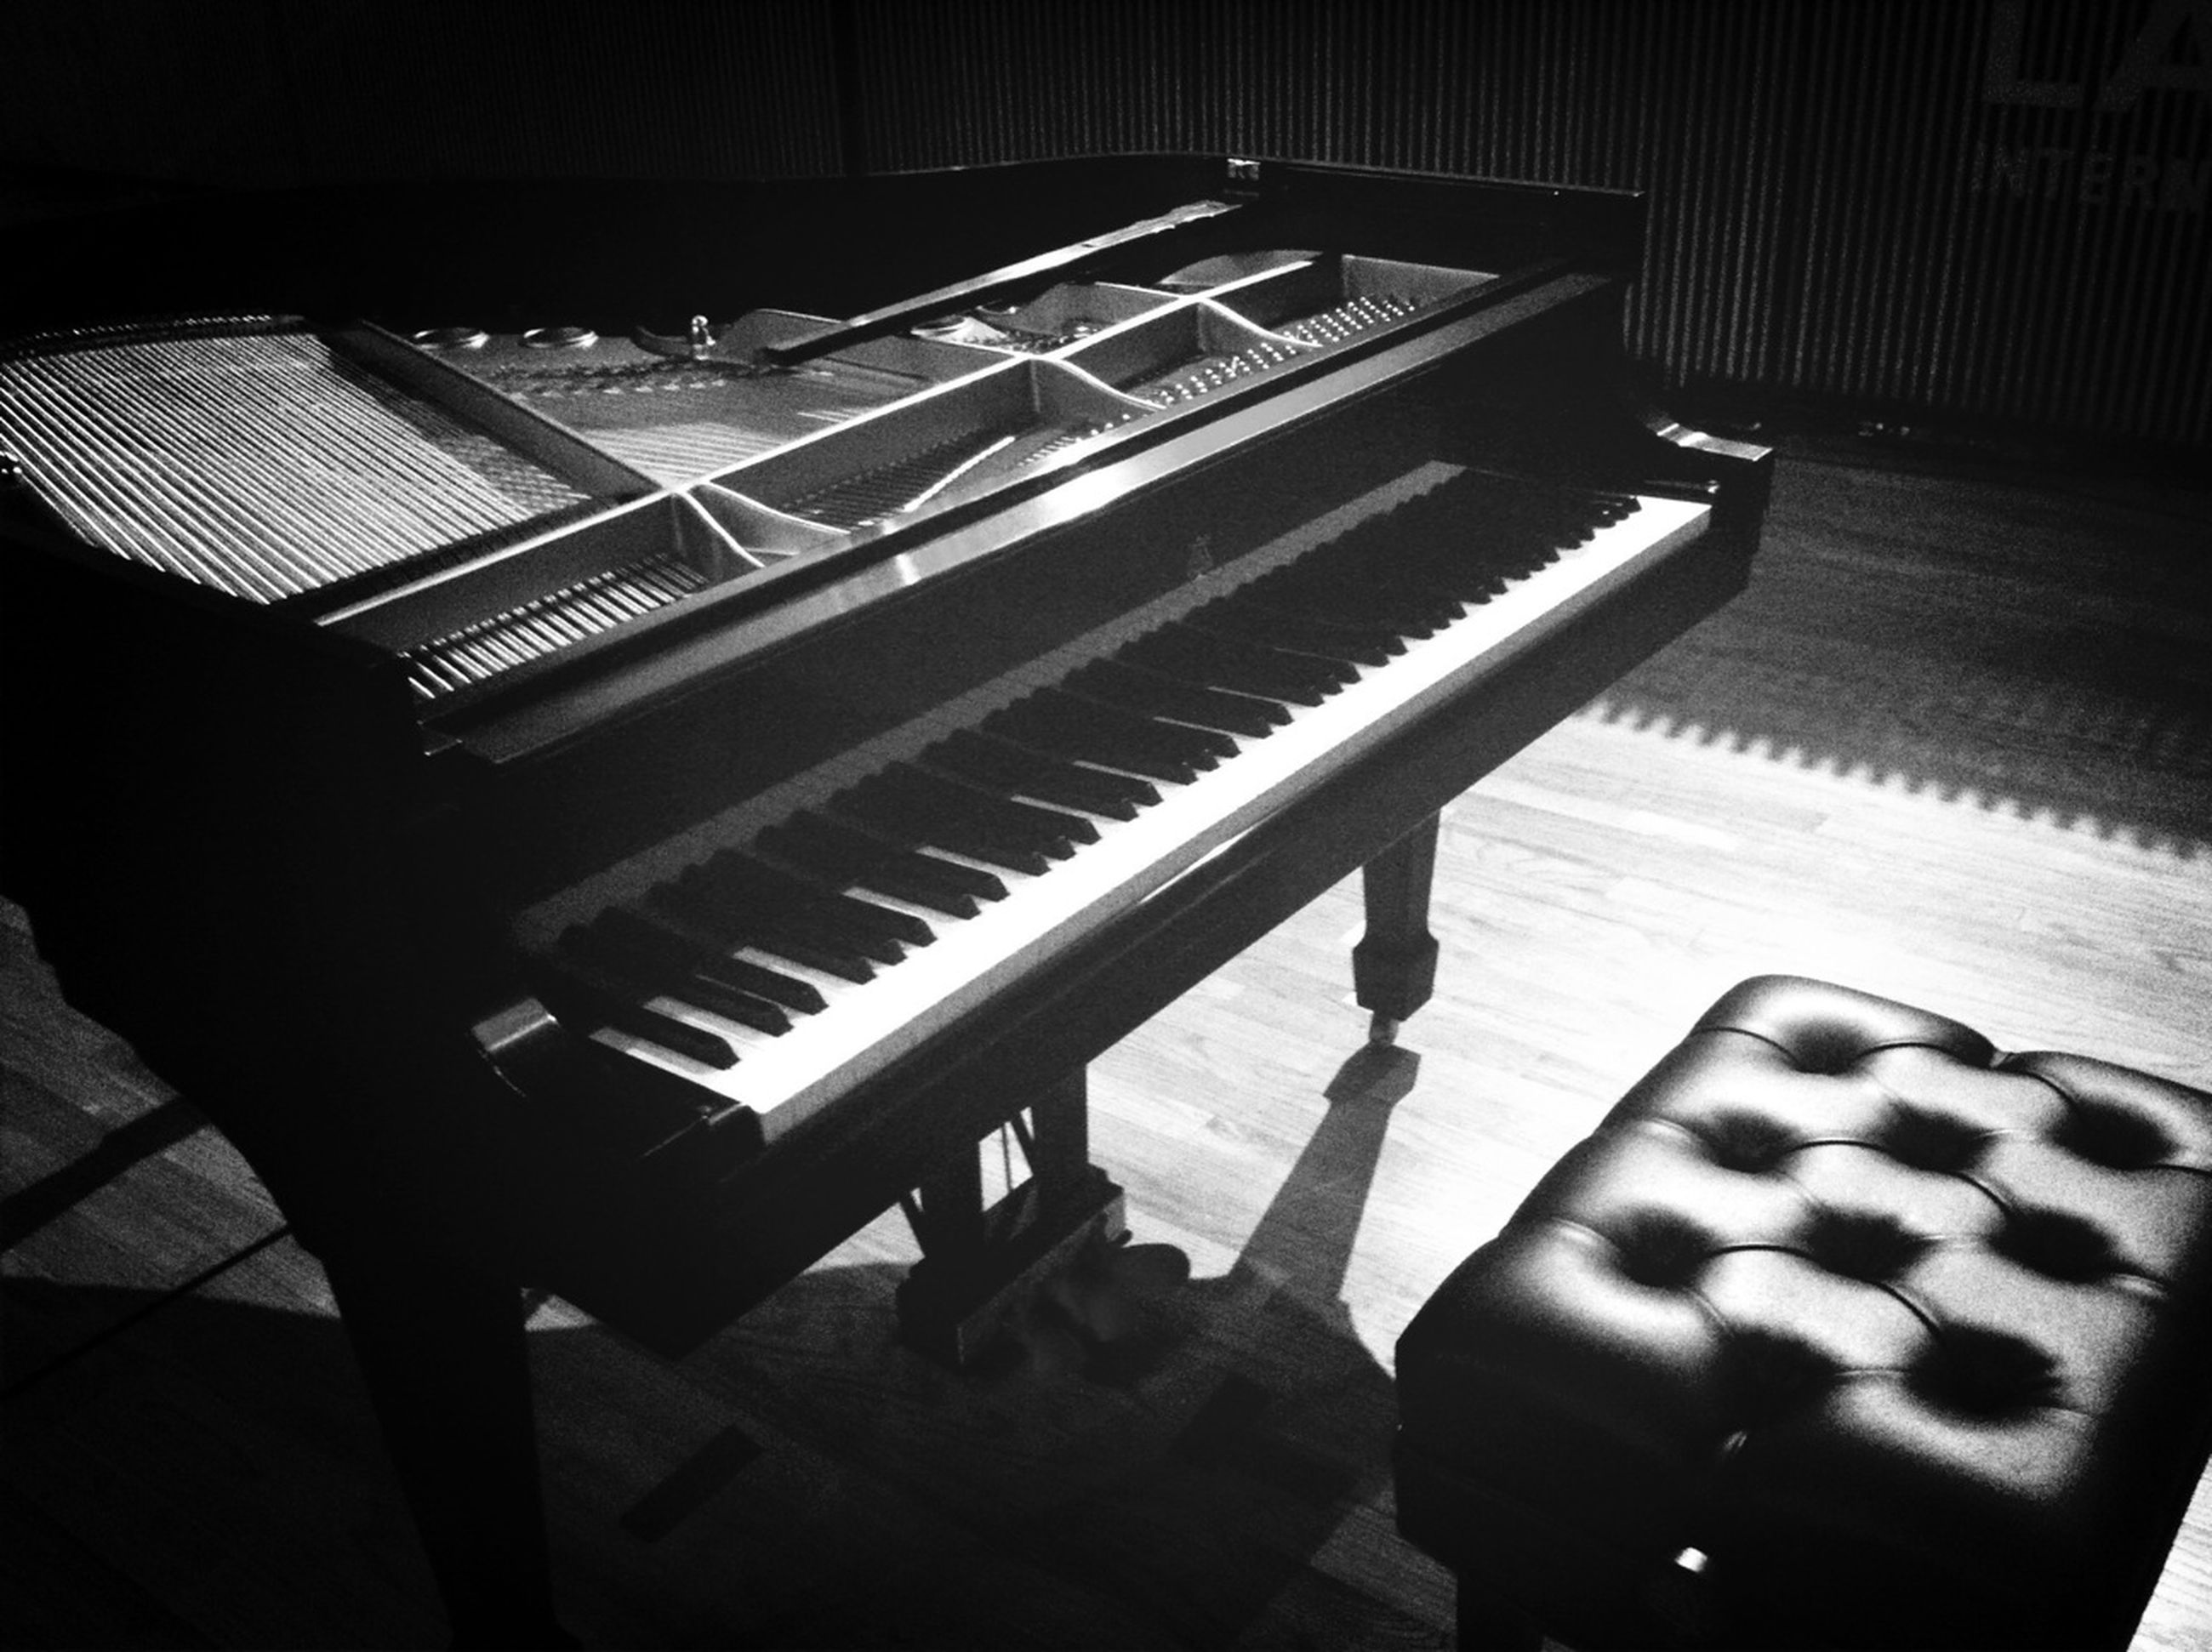 indoors, high angle view, shadow, steps, steps and staircases, staircase, empty, table, chair, piano, musical instrument, absence, arts culture and entertainment, music, wood - material, in a row, sunlight, seat, railing, piano key